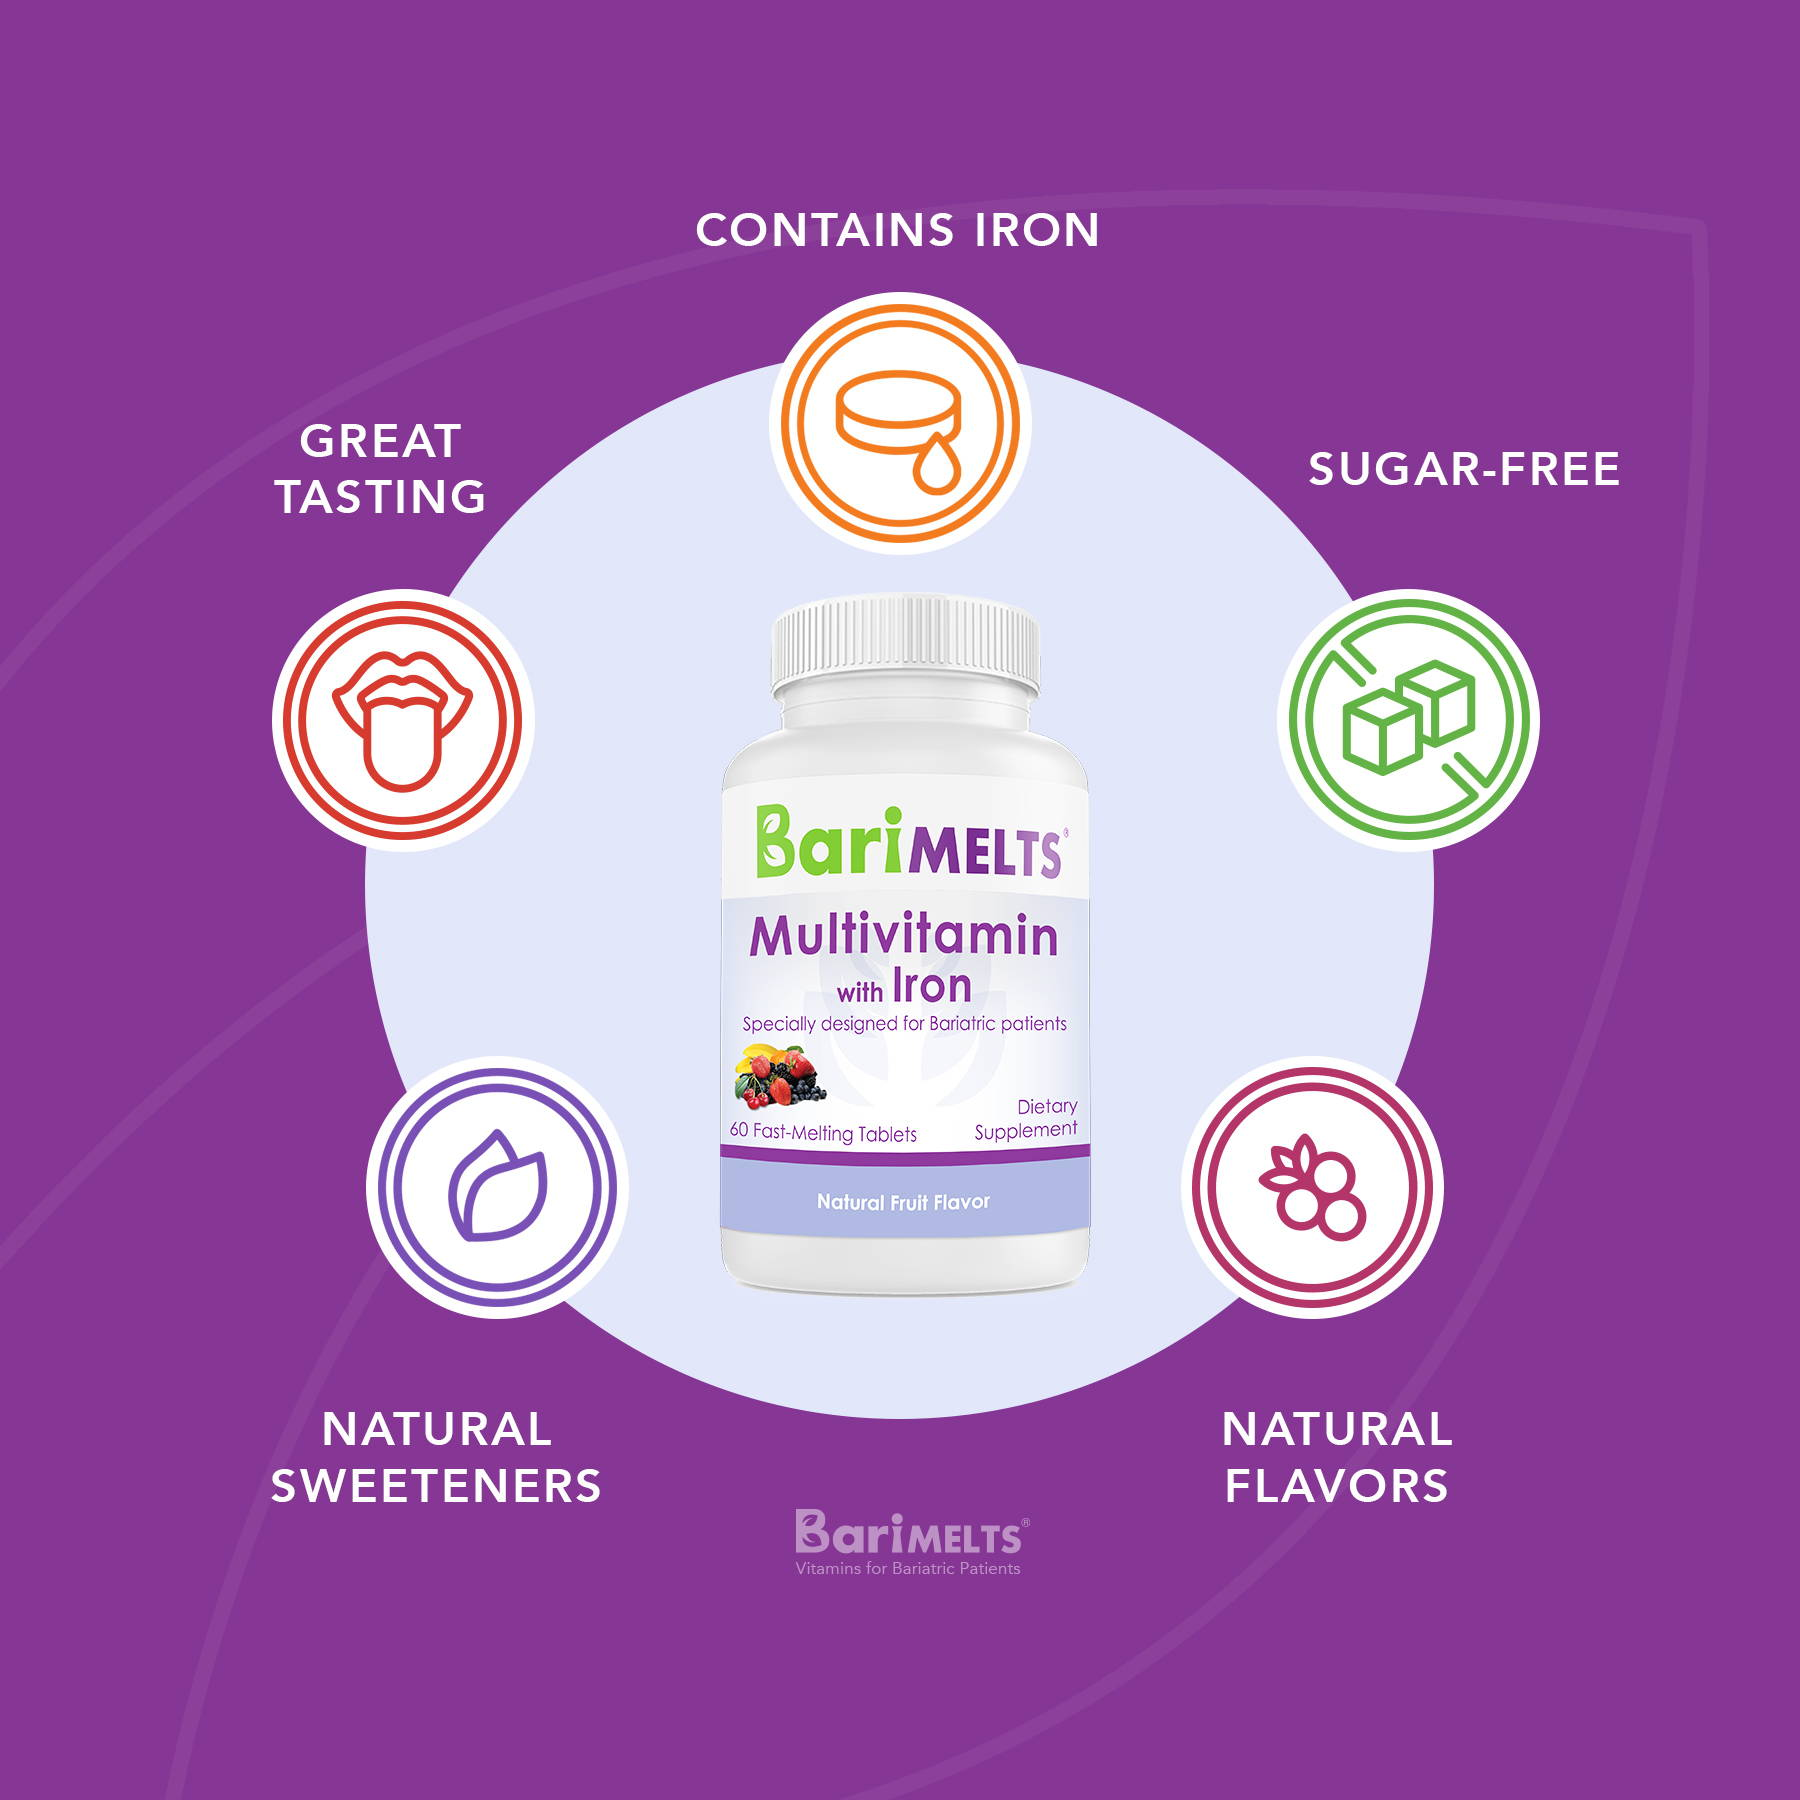 Multivitamin with iron is sugar free with natural flavors, natural sweeteners and great tasting